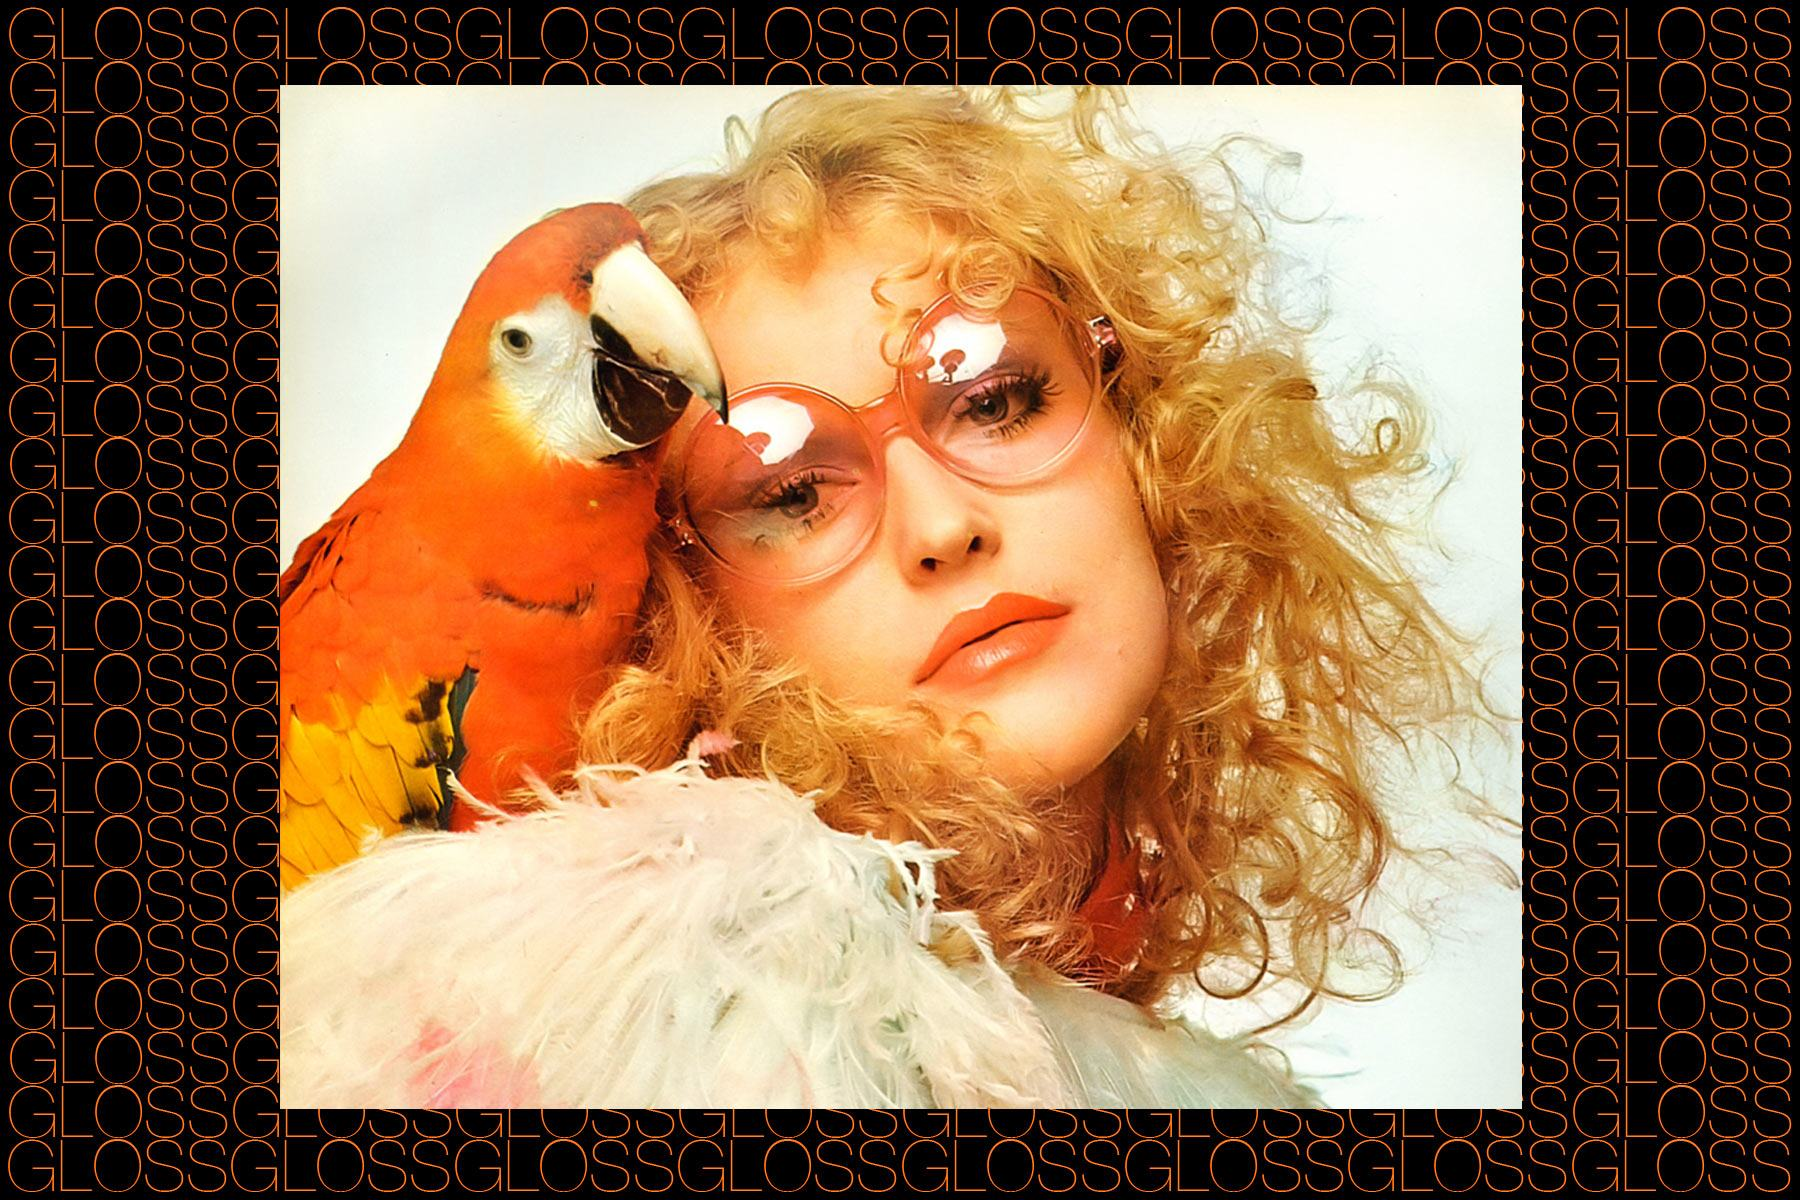 A model with a parrot, photographed by Chris von Wangenheim. From the Rizzoli 2015 book GLOSS by Roger Padilha & Mauricio Padilha. Ponyboy magazine NY.